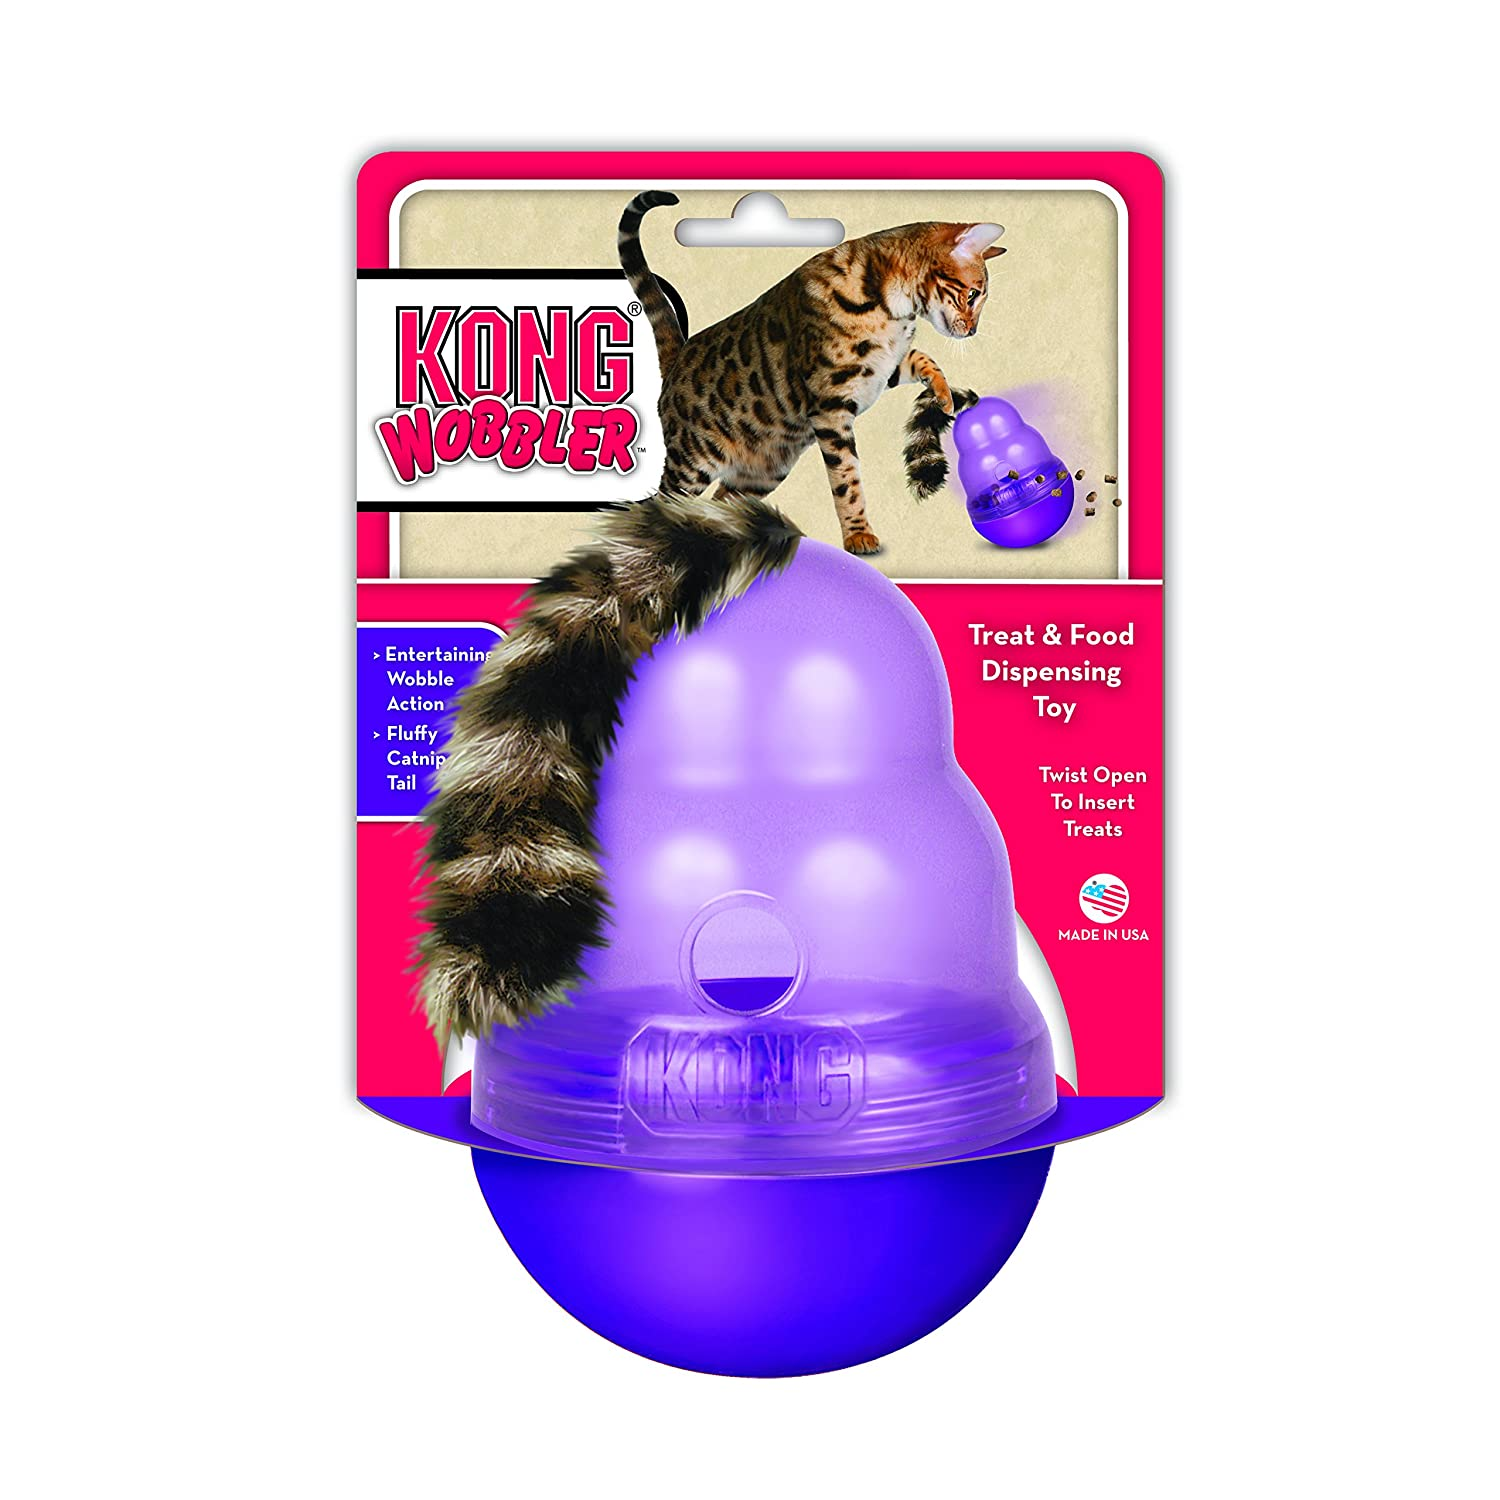 Dishes, Feeders & Fountains The Company Of Animals Northmate Interactive Cat Feeder Purple Slow Feed Bowl 1 Fine Quality Cat Supplies